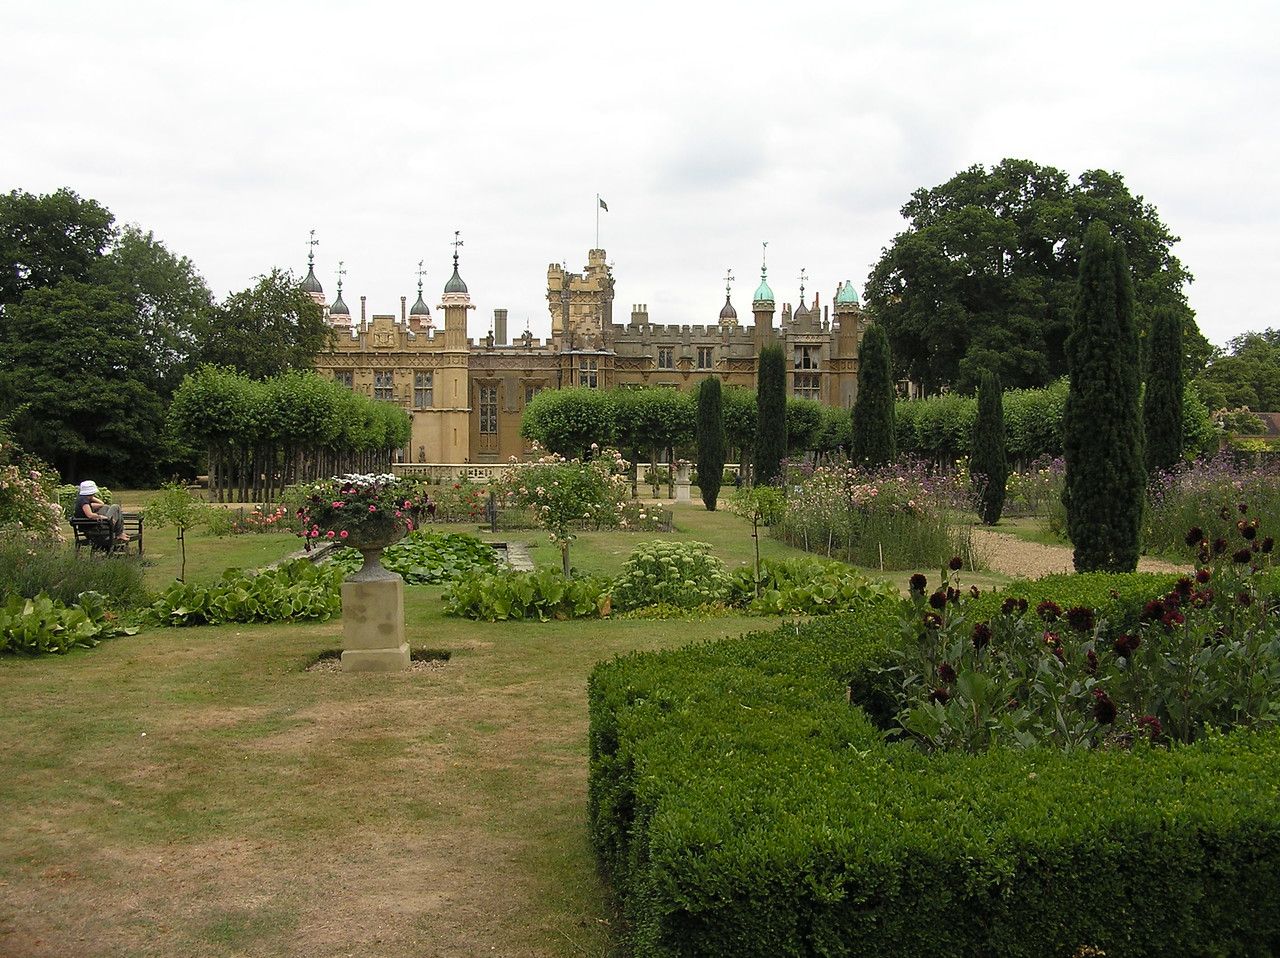 On the opposite side of the house (from what is seen in the movie) are the Knebworth Gardens.